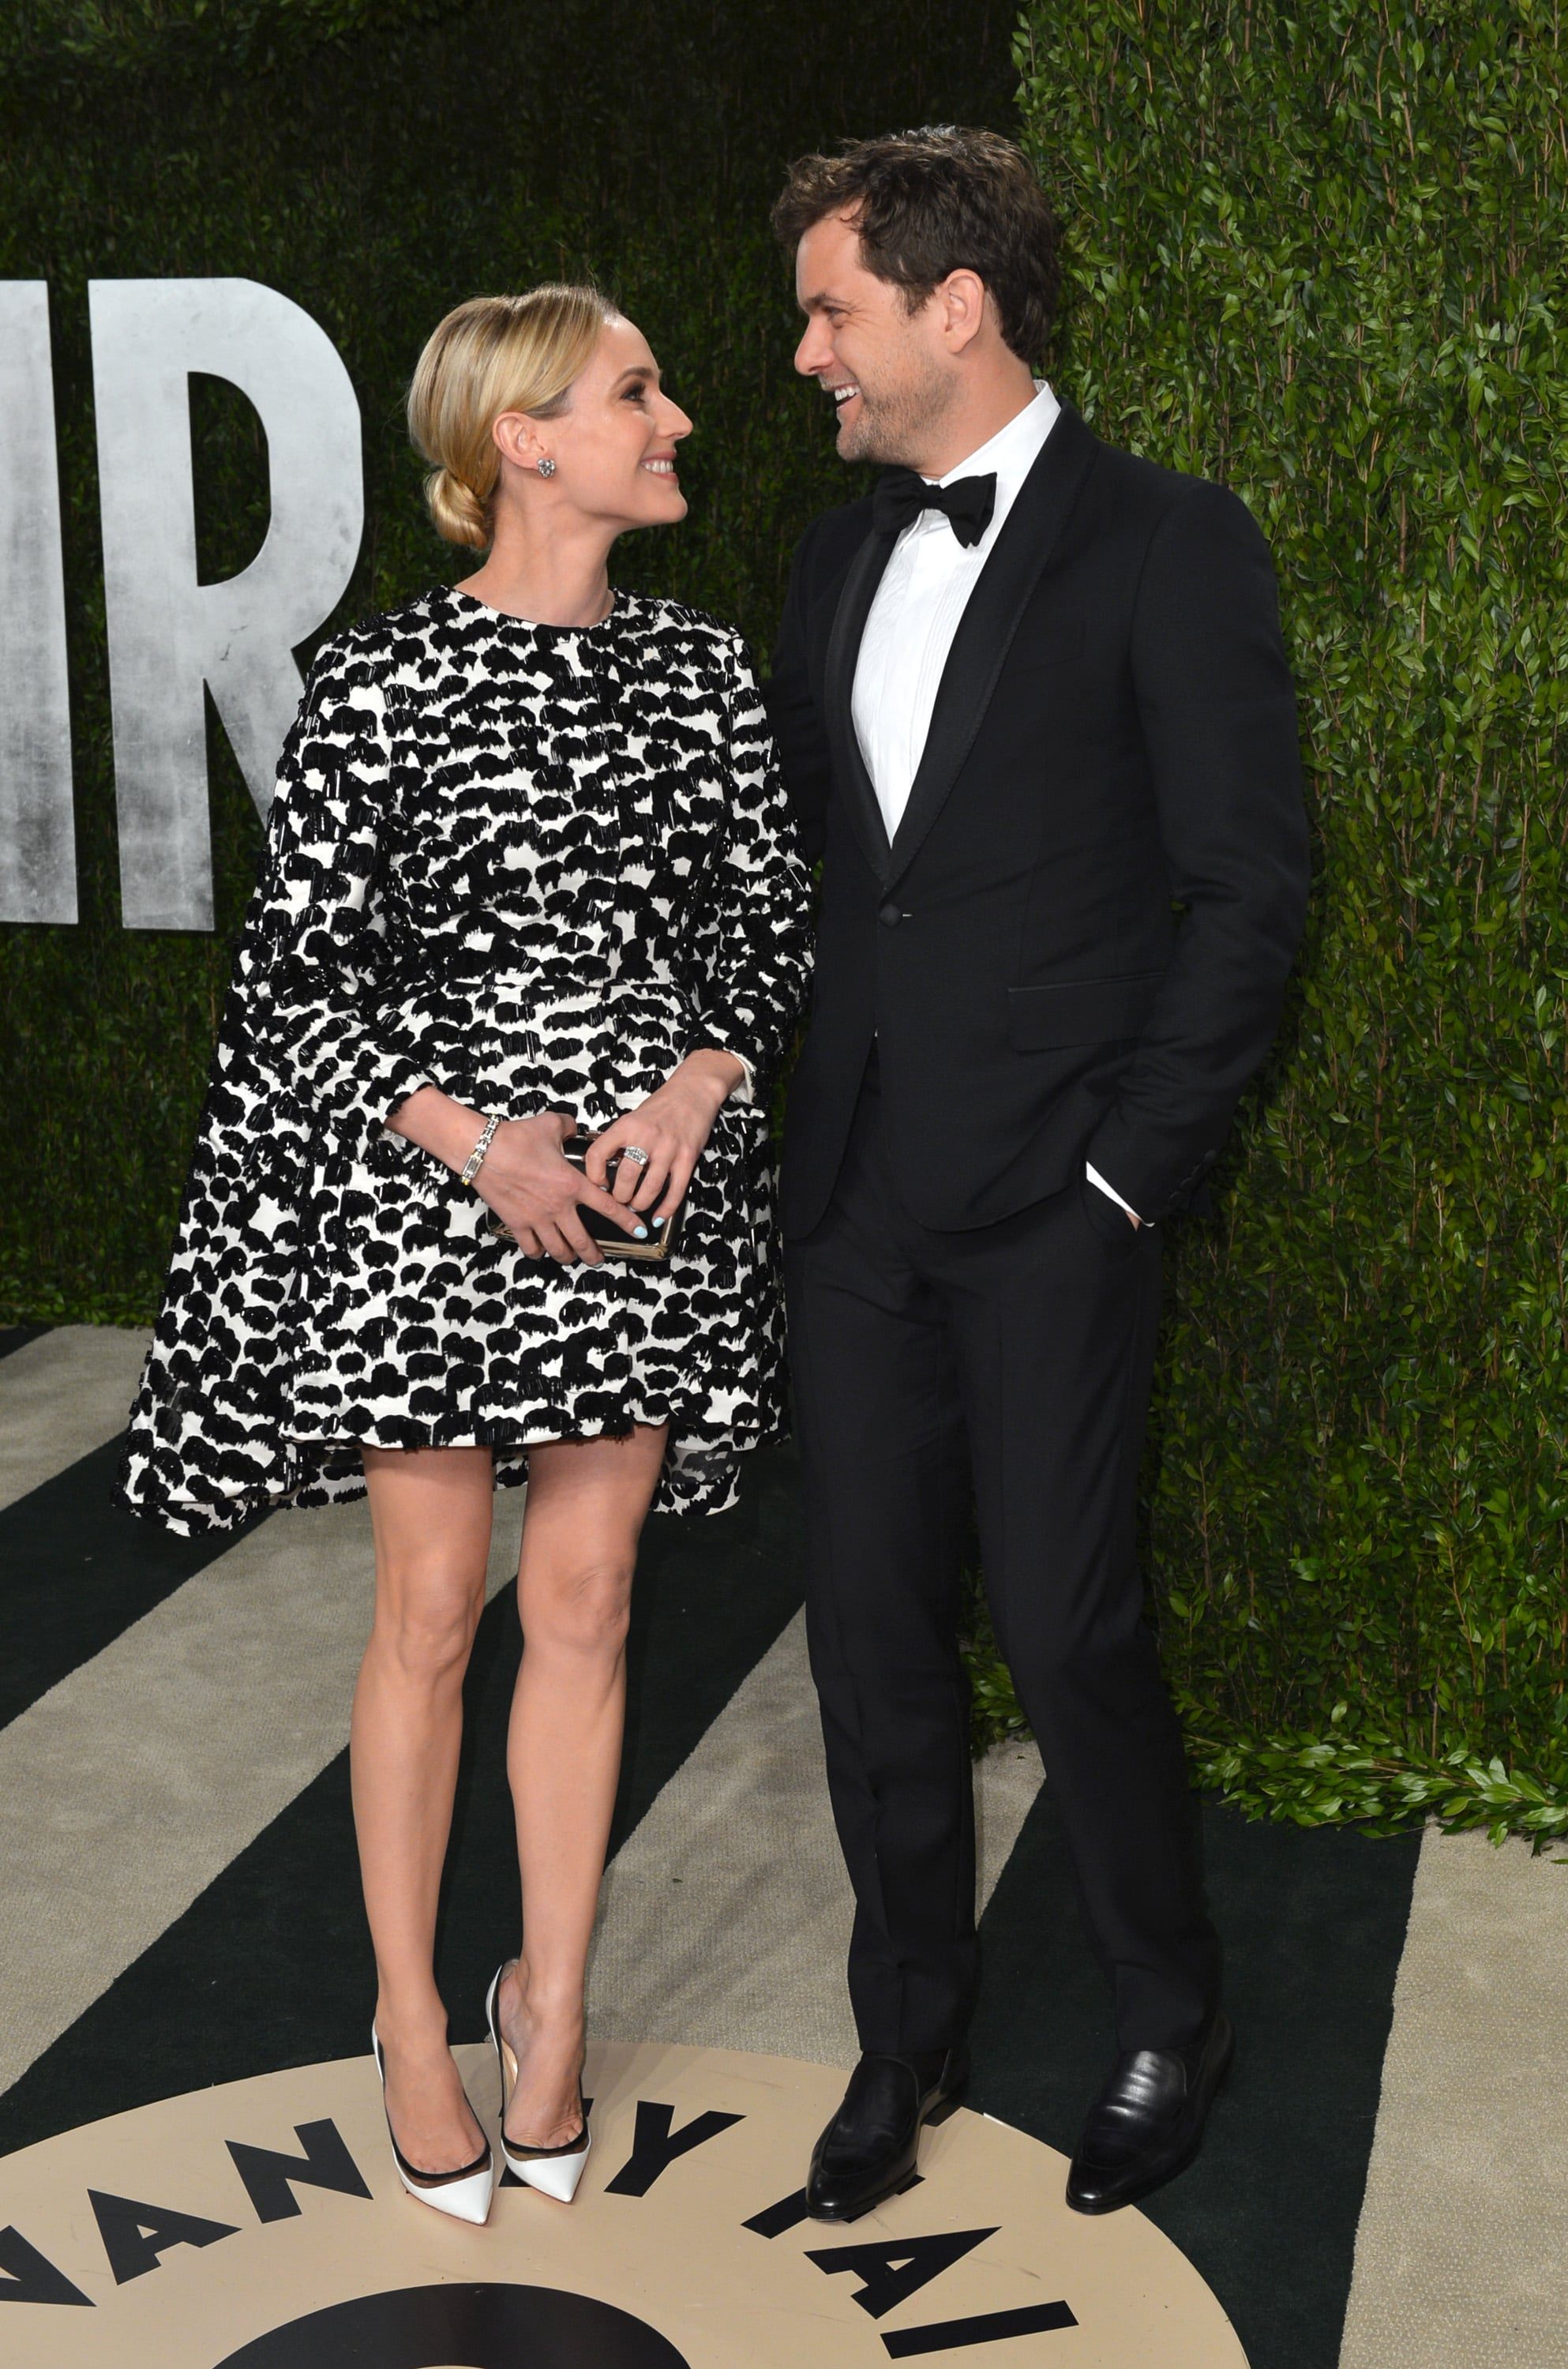 Diane Kruger and Joshua Jackson shared a loving look as they arrived at the Vanity Fair Oscar party on Sunday night.